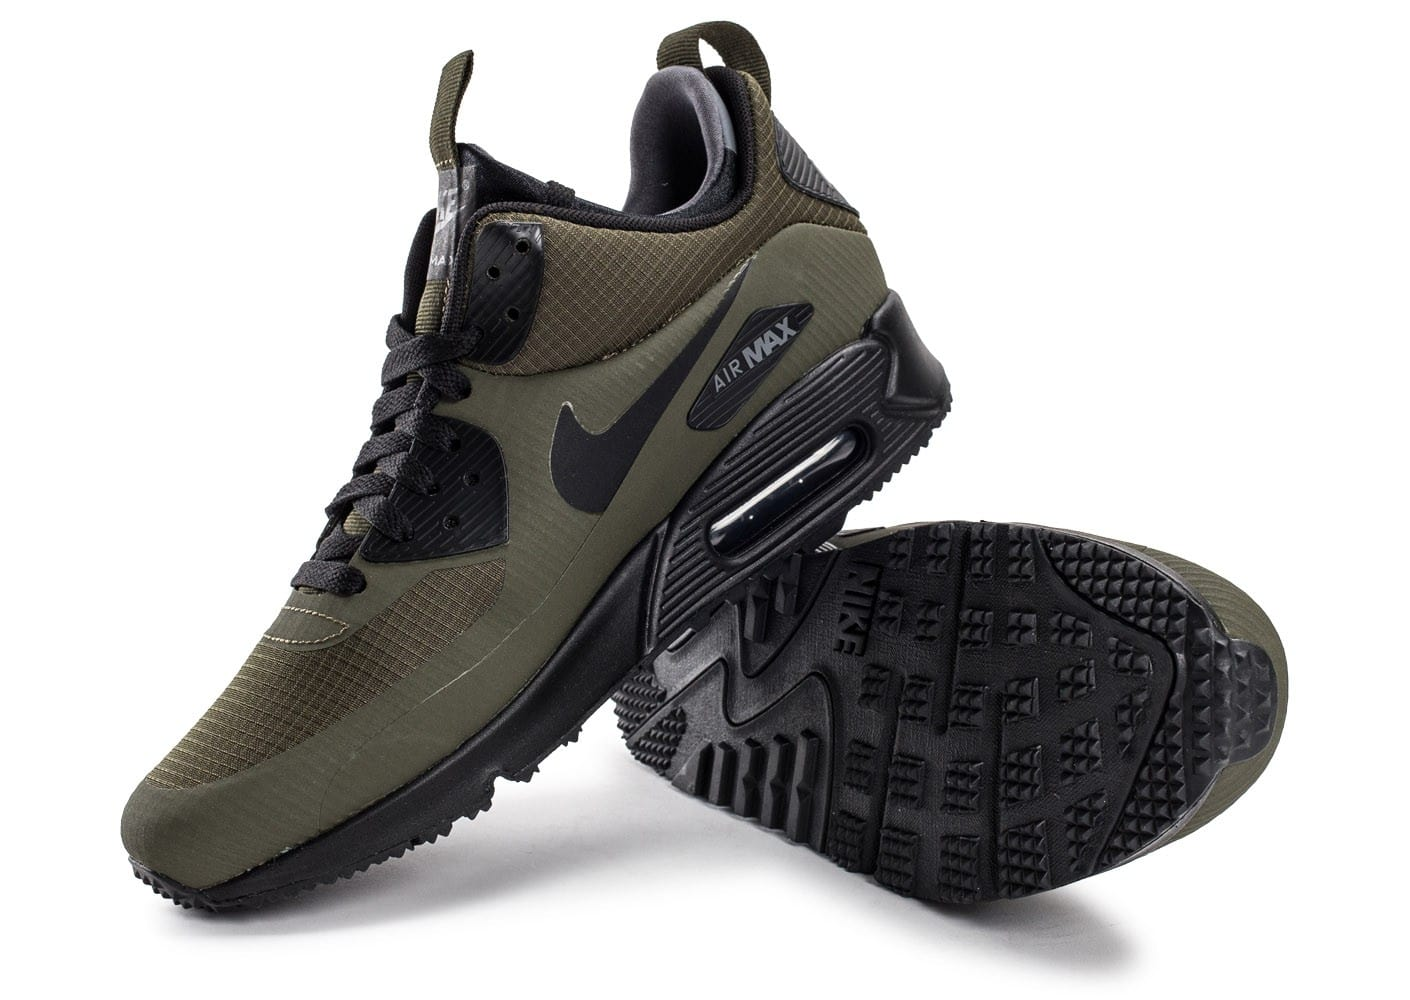 new arrival e9ed2 fa4c2 ... Chaussures Nike Air Max 90 Mid Winter Green vue intérieure ...